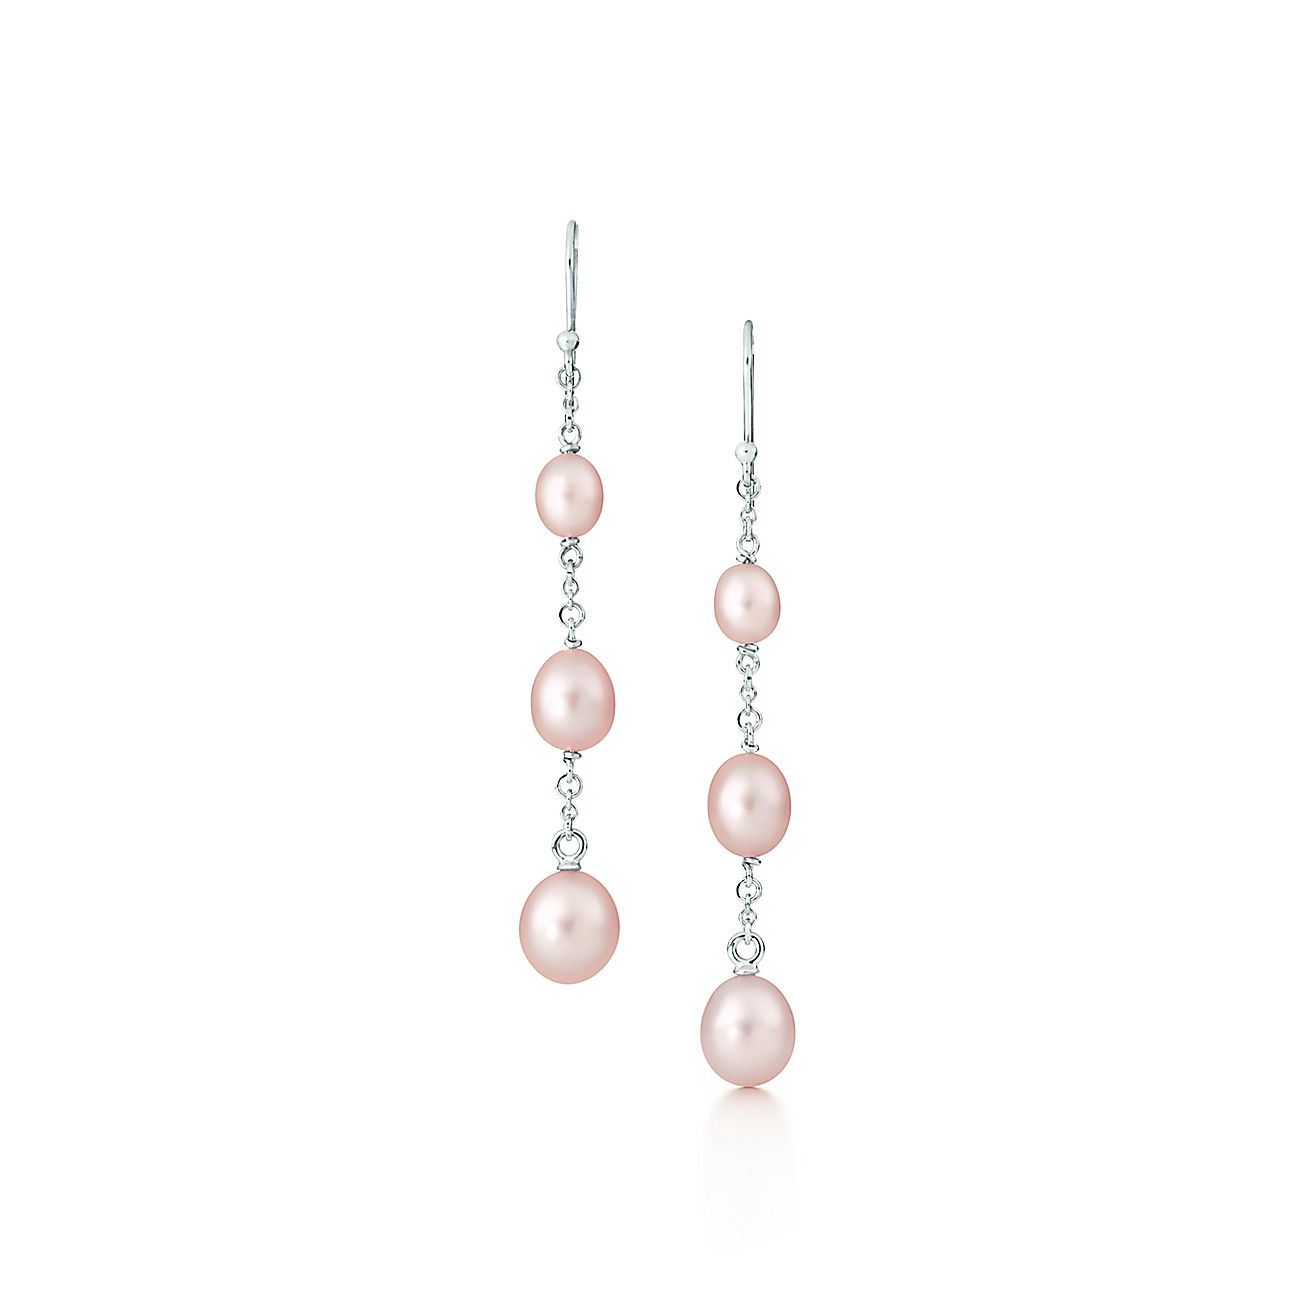 Elsa Peretti®<br>Pearls by the Yard™ graduated earrings